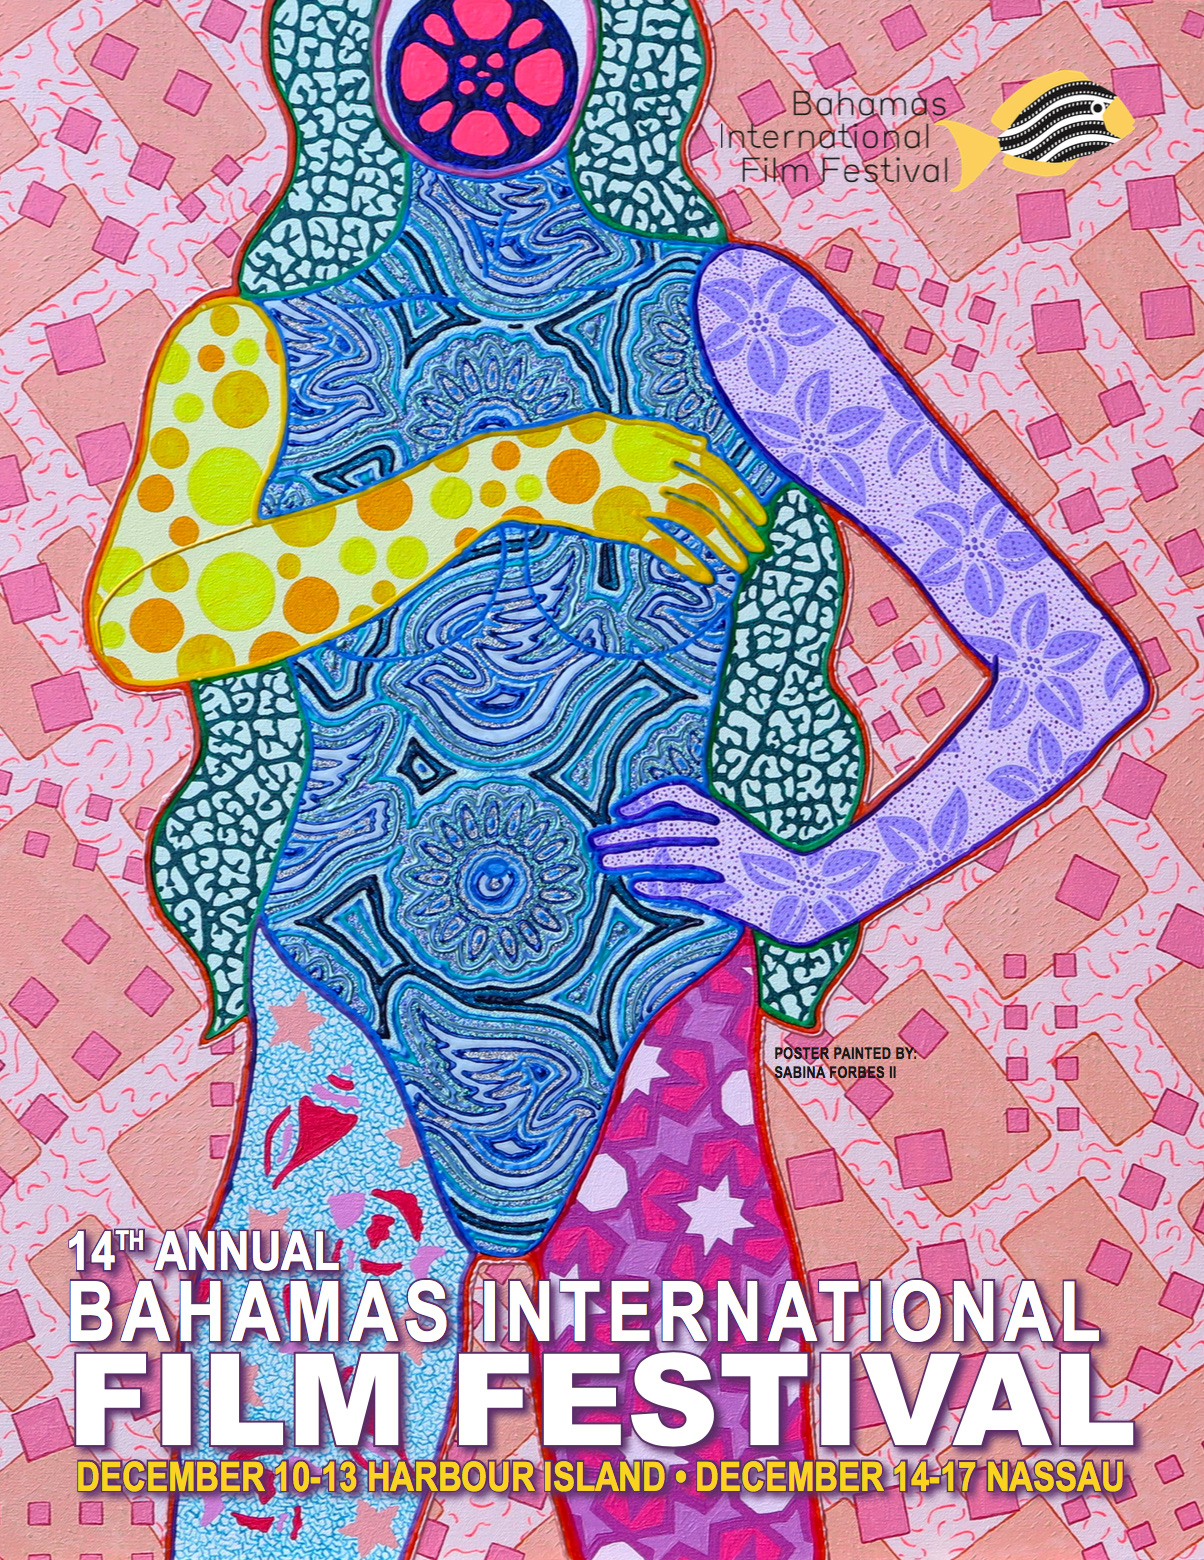 BIFF 2017 | Bahamas International Film Festival